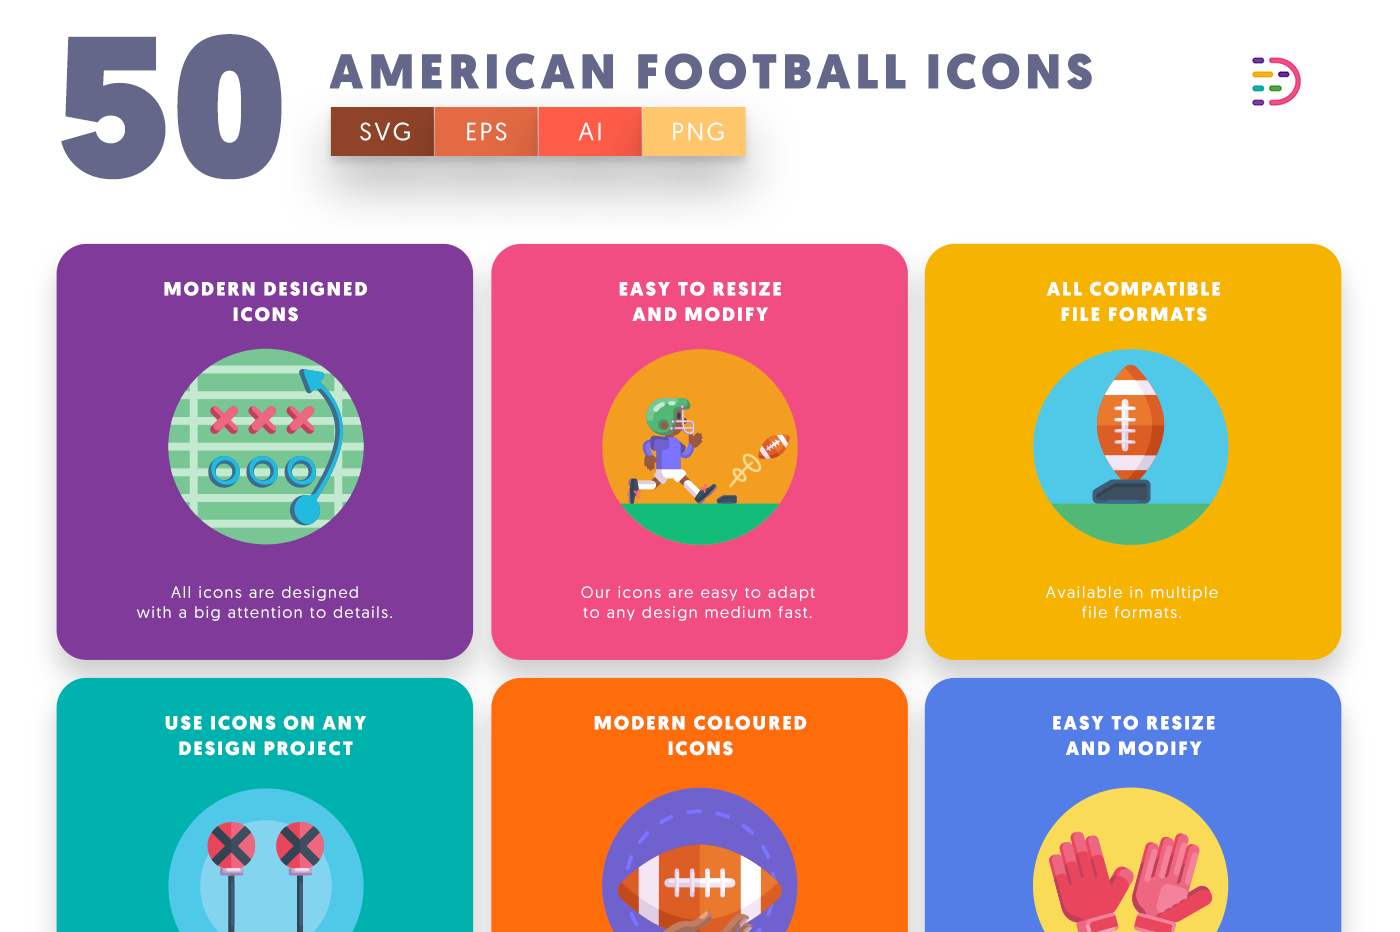 50 American Football Icons with colored backgrounds